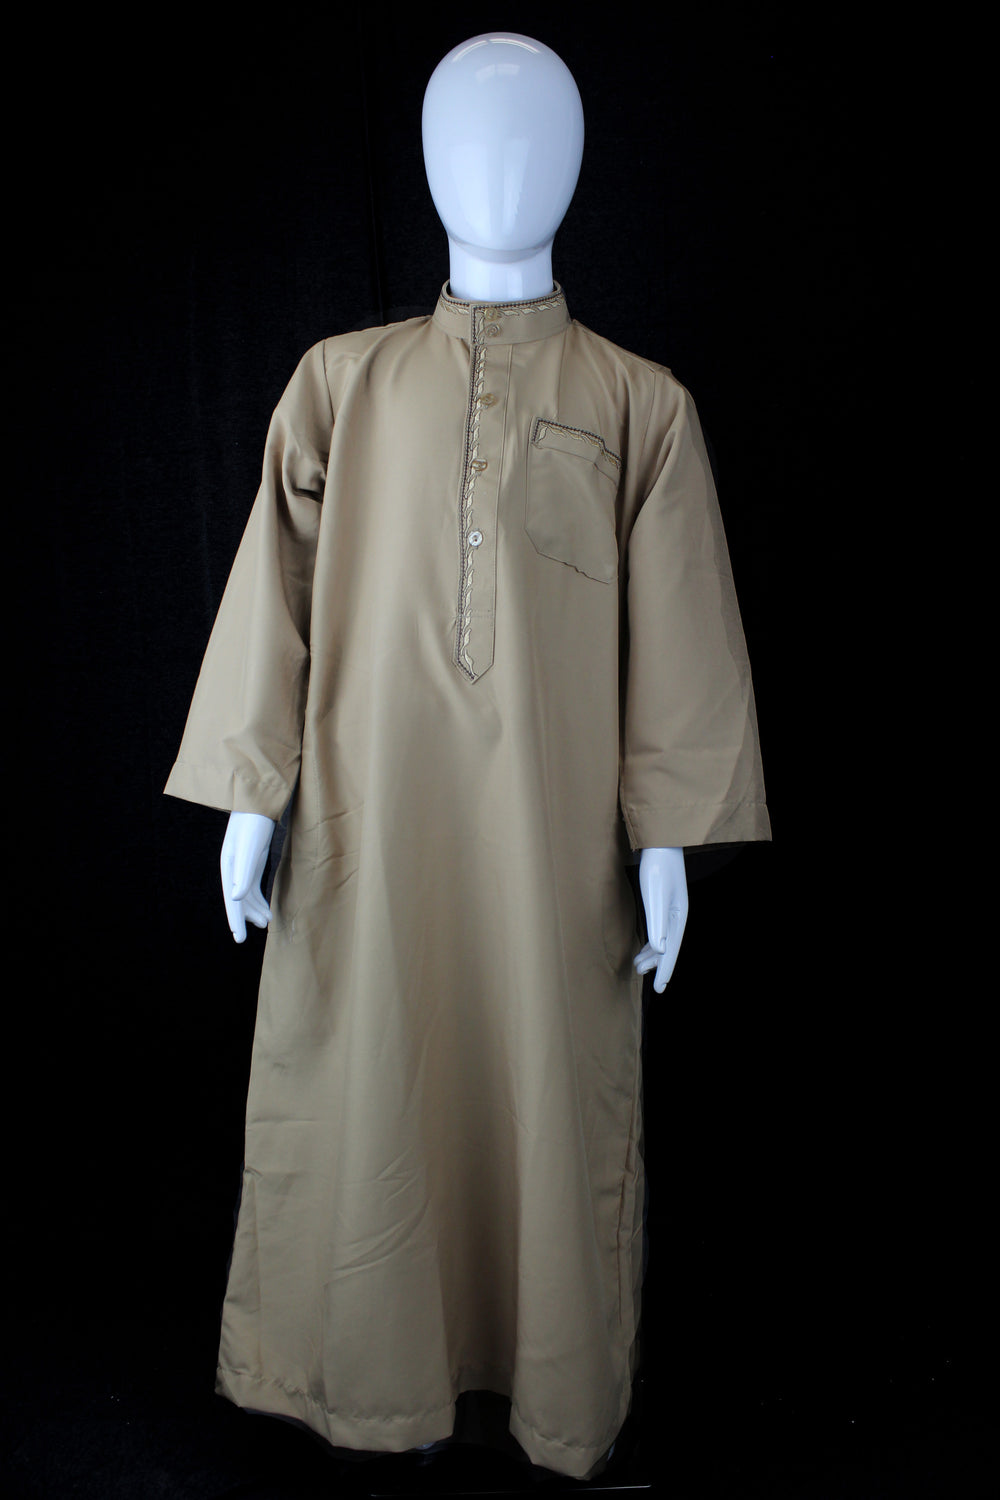 tan boy's jilbab with a collar and embroidery